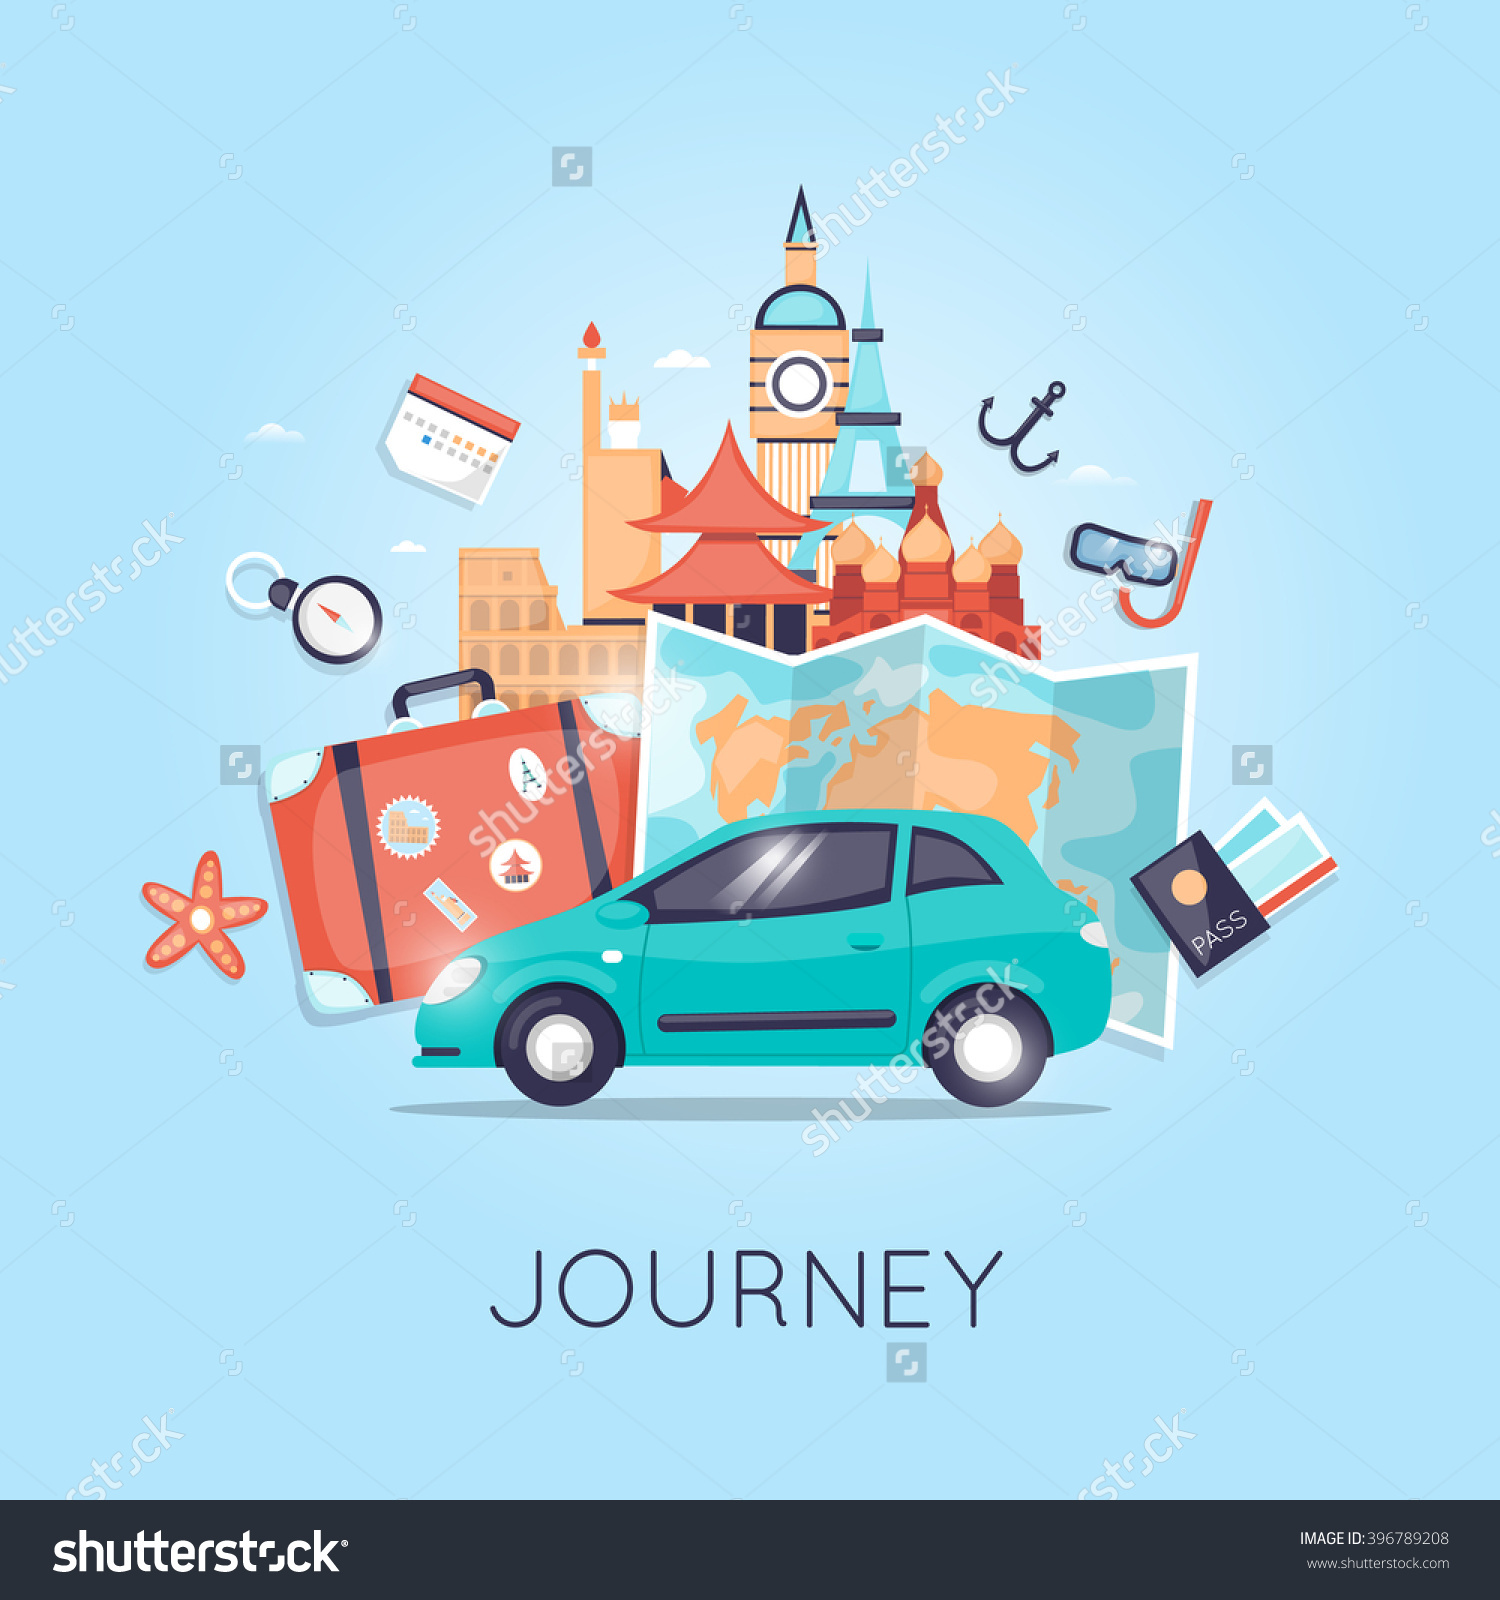 Travel By Car Russia Usa Japan Stock Vector 396789208.